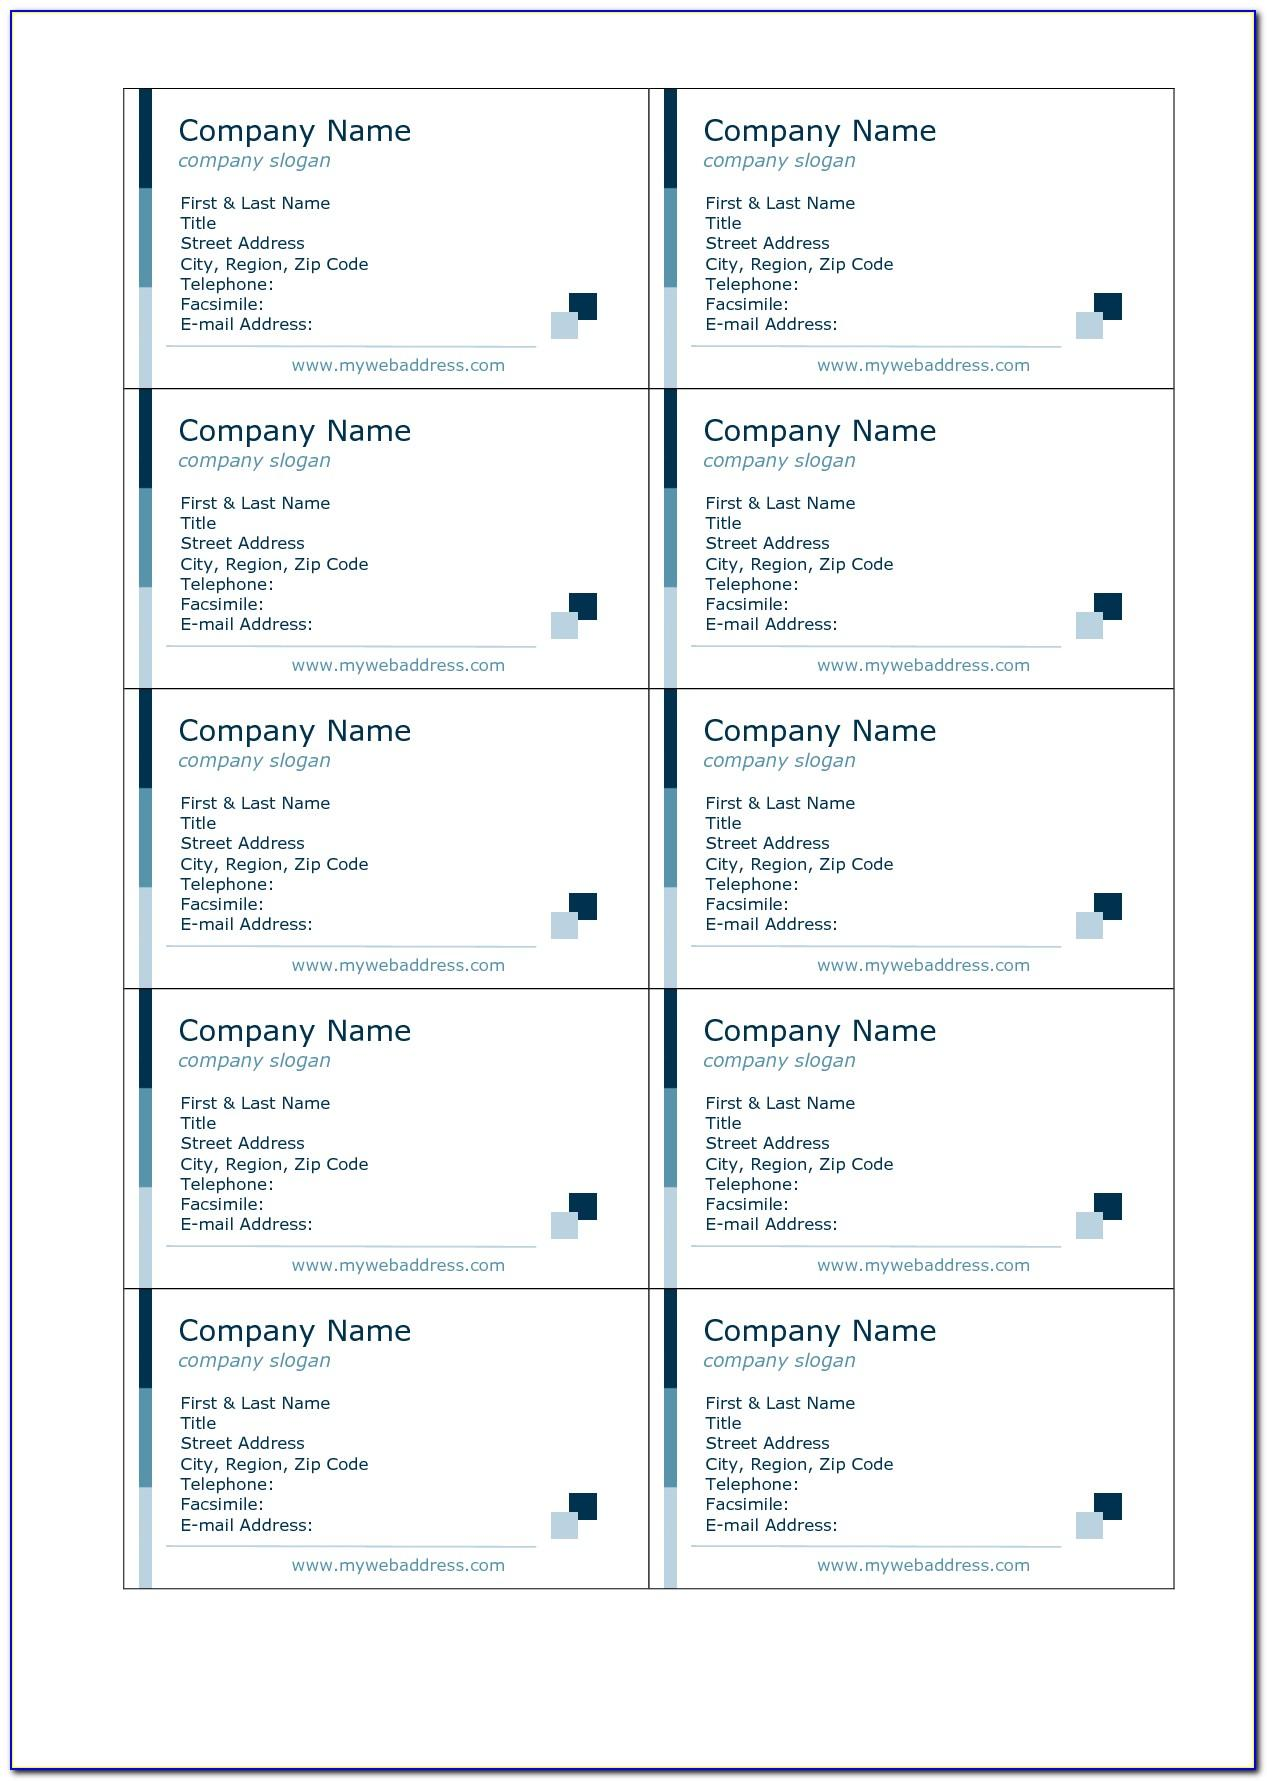 Avery Template 8371 Business Cards Microsoft Publisher